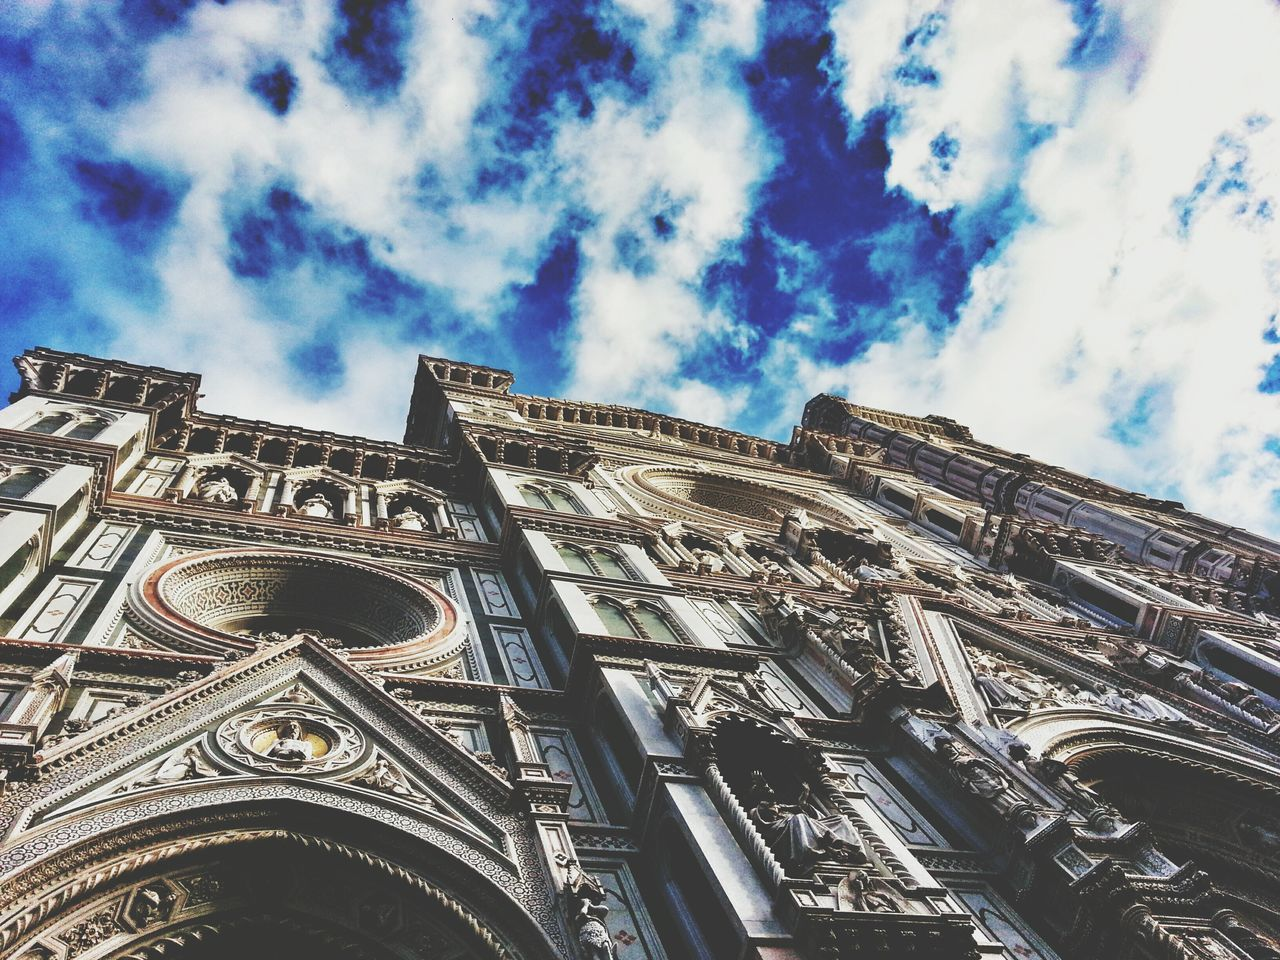 Duomo Di Firenze Duo Duomo Firenze Florence Italy Arhitecture Church MyPhotography EyeEm Gallery ThatsMe Travelling Travel Destinations Travelgram Hello World Travel Travelingram Travelling Photography Travelphotography Townphotography EyeEm Best Shots Travelingtheworld  Traveling Walking